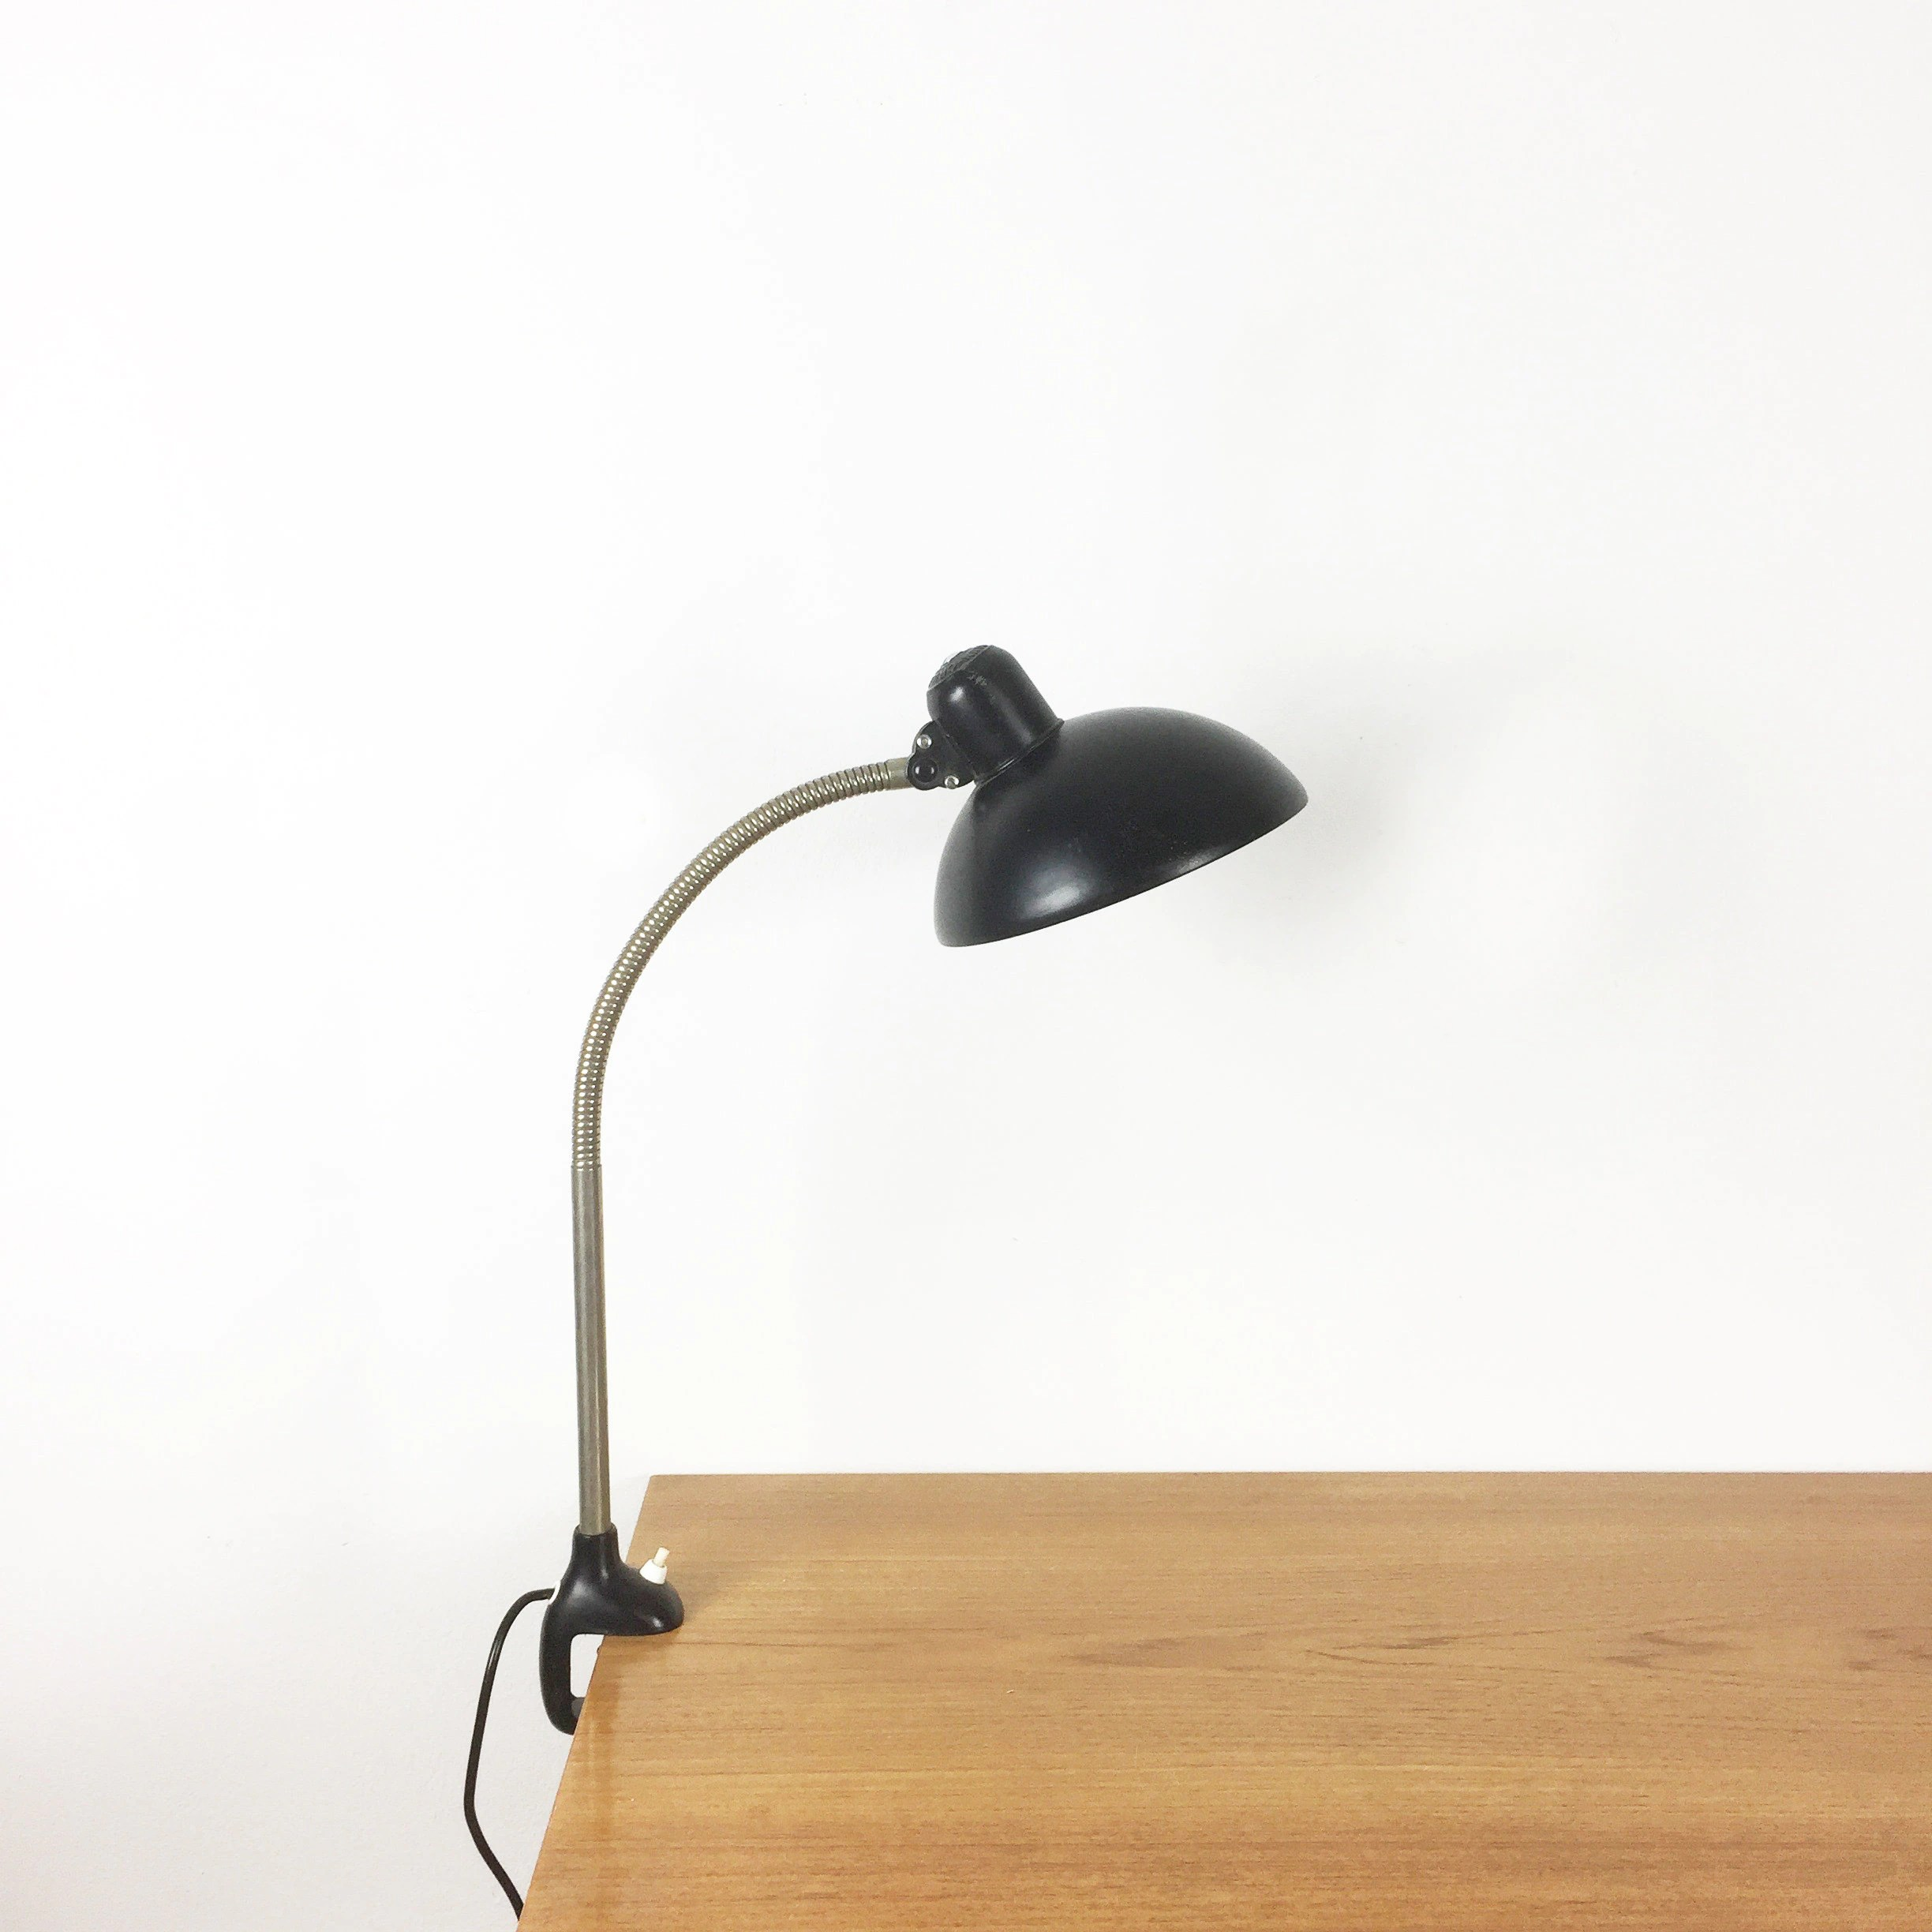 Kaiser Idell Lampe 1950s German Black Kaiser Idell Table Fixation Bauhaus Desk Light Lampe Christian Dell Danish Modern Midcentury Modern Eames Panton